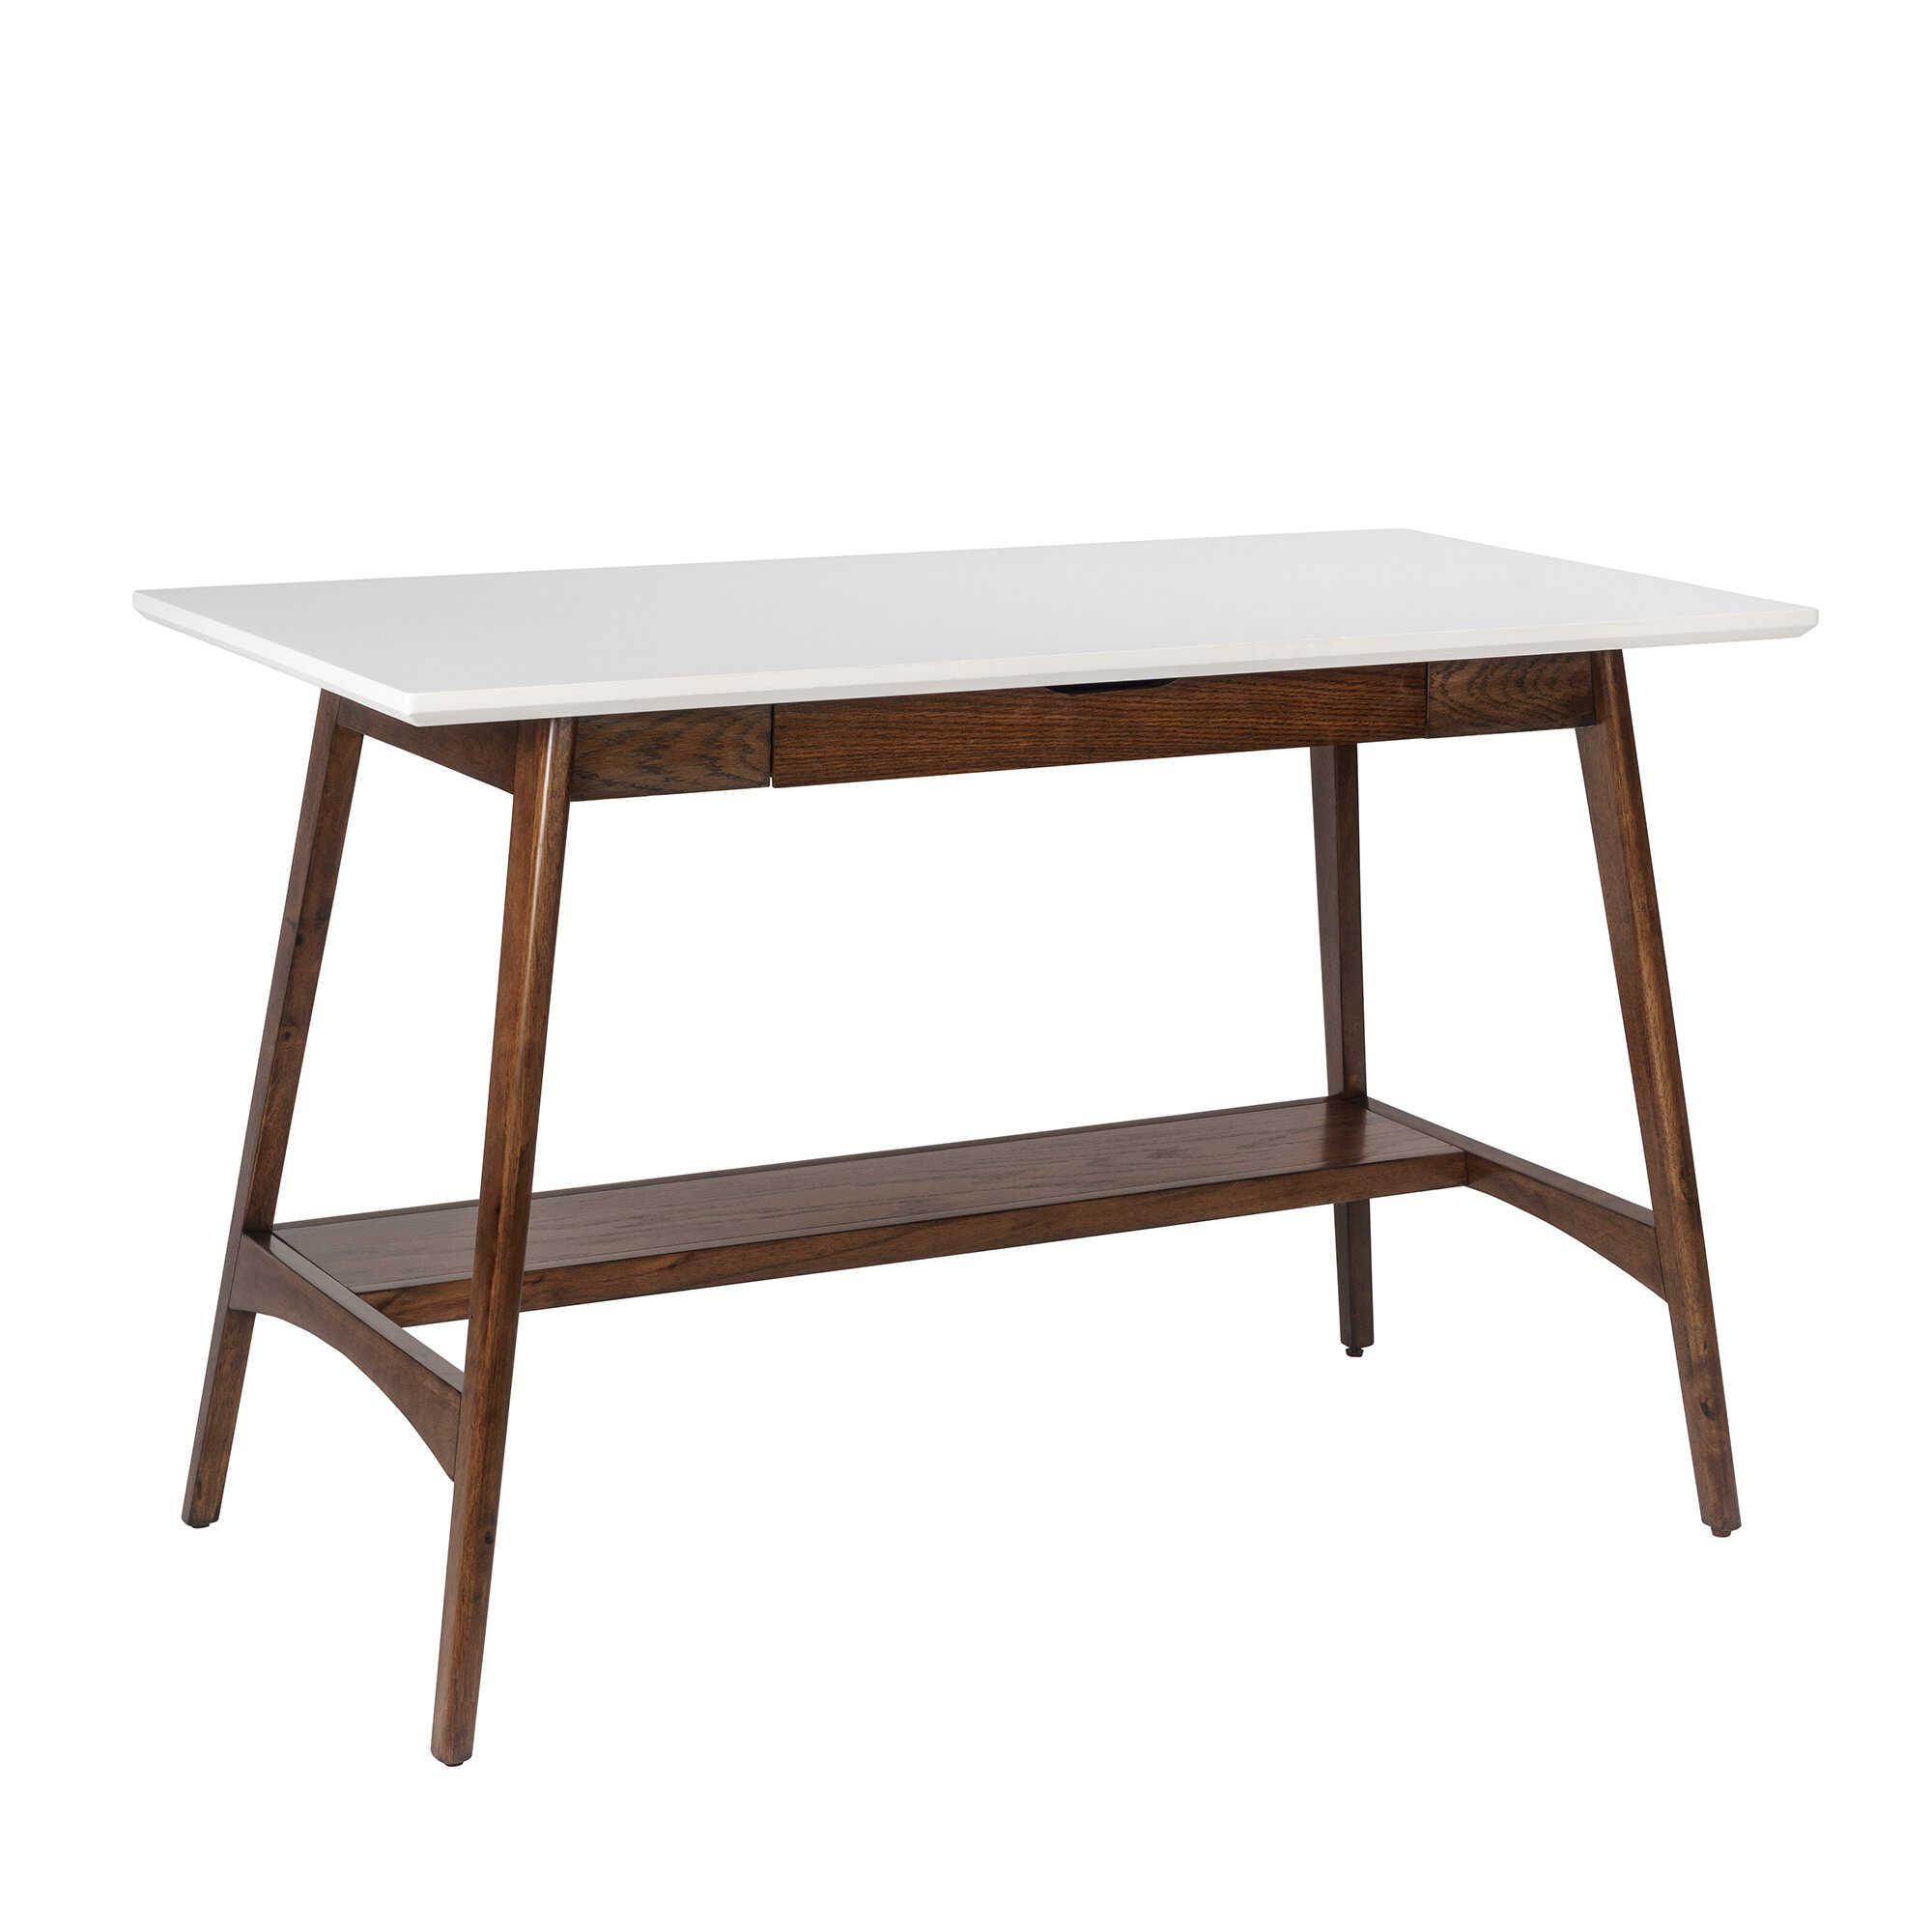 Image of: Mid Century Modern Writing Desks You Ll Love In 2020 Wayfair